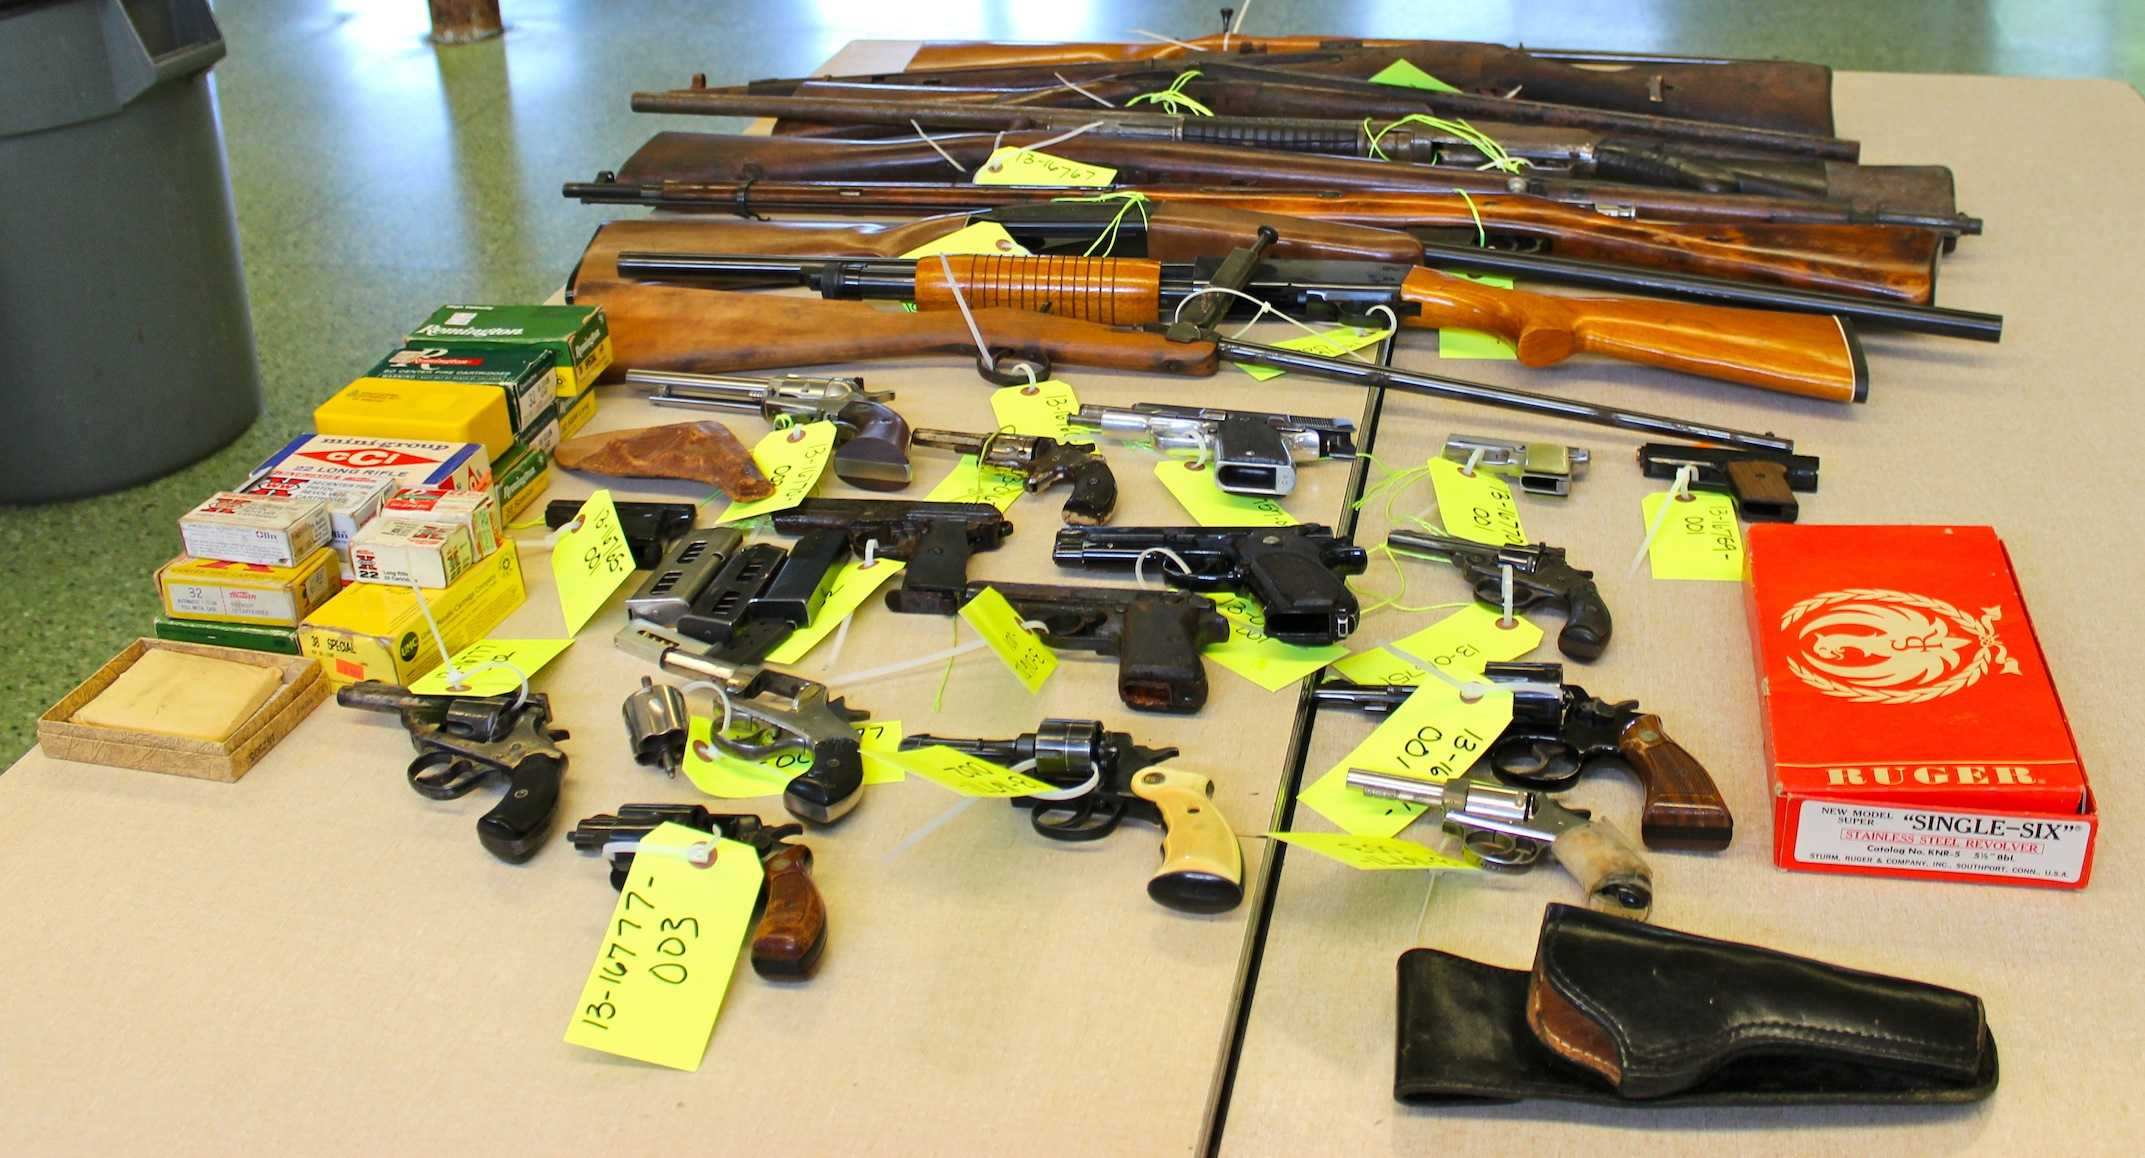 Police officers displayed the firearms they collected at Evanston's second gun buyback event on Saturday. Police Chief Richard Eddington said he hopes to make the service available to residents on a daily basis.